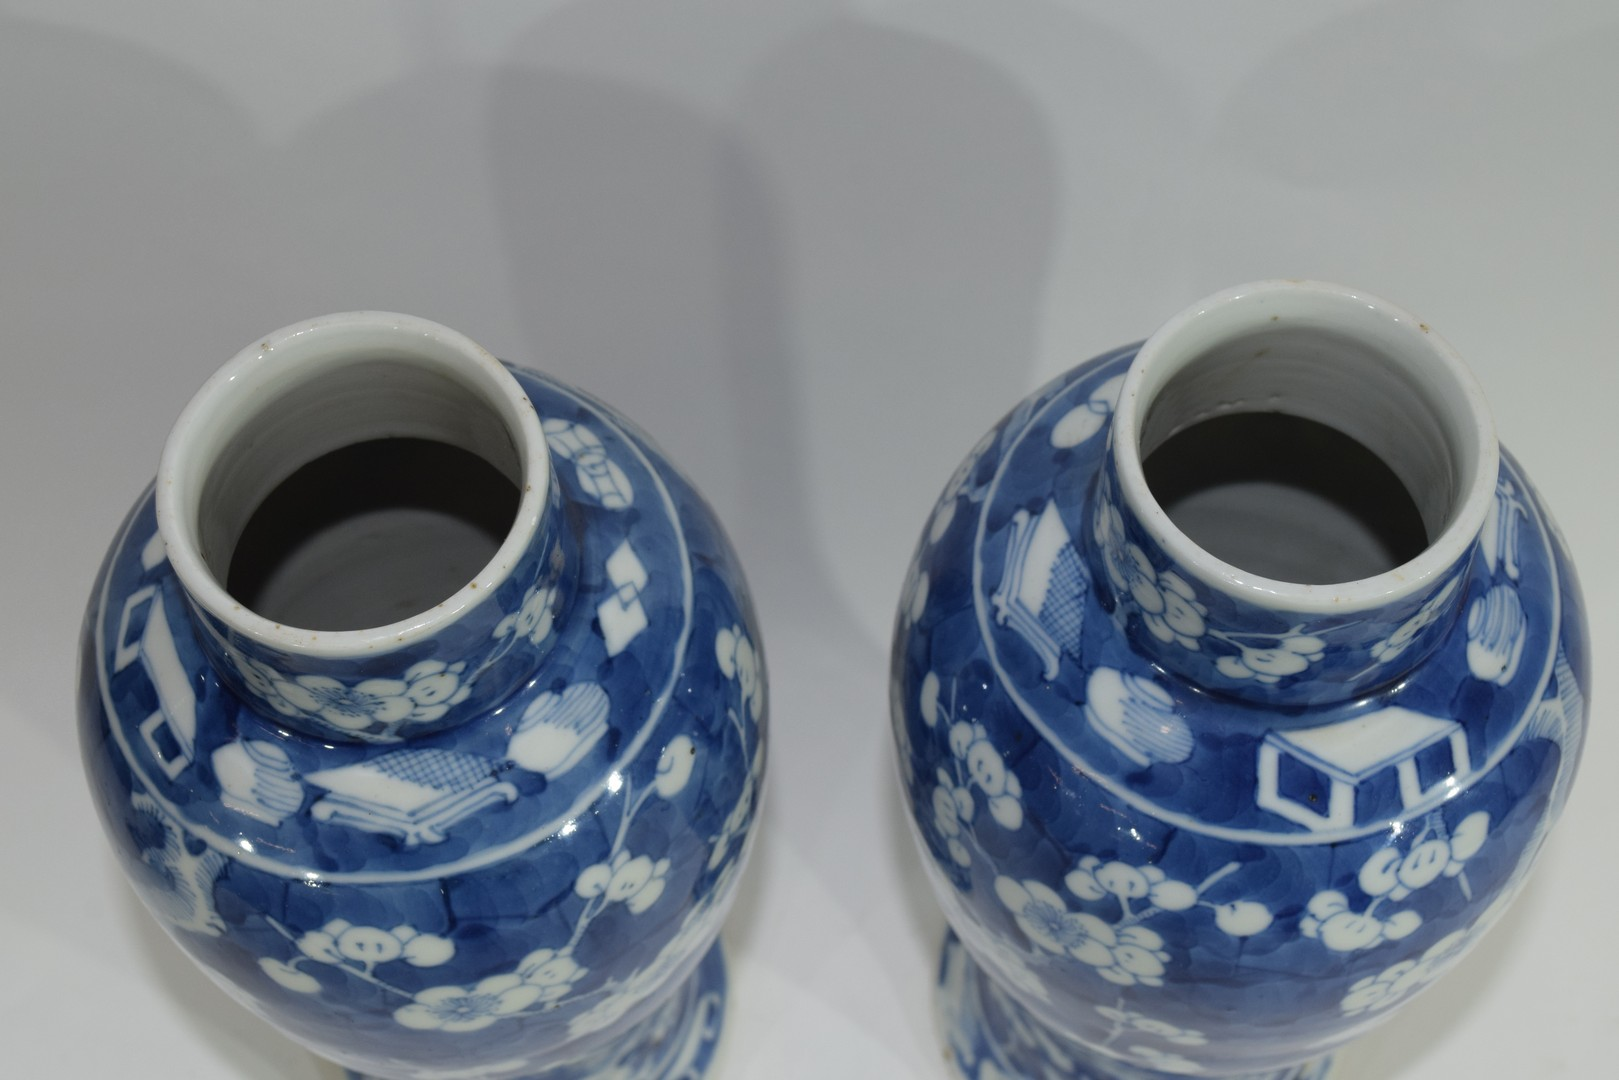 Pair of 19th century Chinese porcelain vases and covers - Image 8 of 9